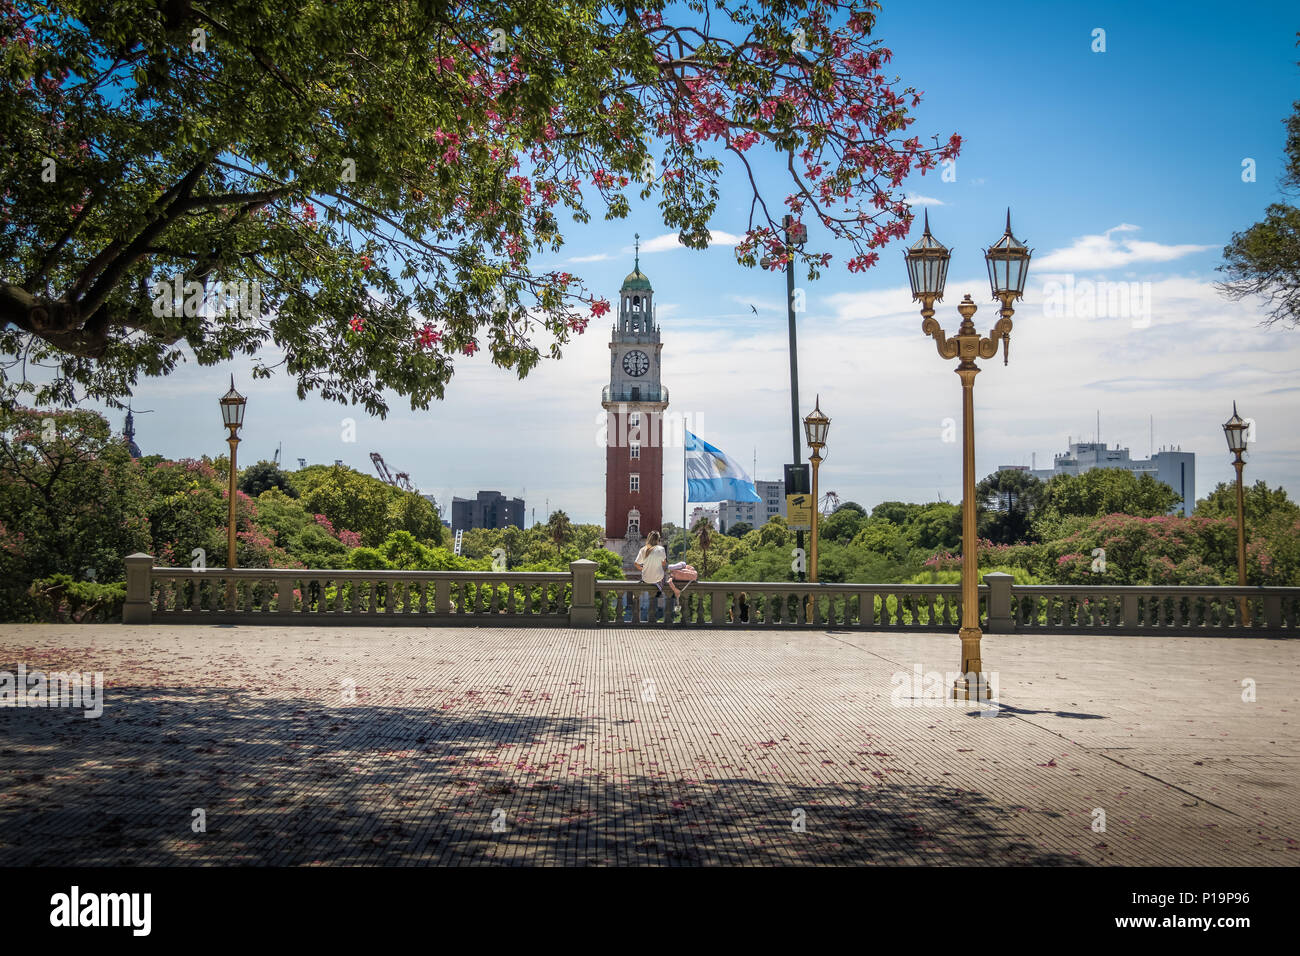 San Martin Square (Plaza San Martin) and Monumental Tower (Torre Monumental) at Retiro region - Buenos Aires, Argentina - Stock Image